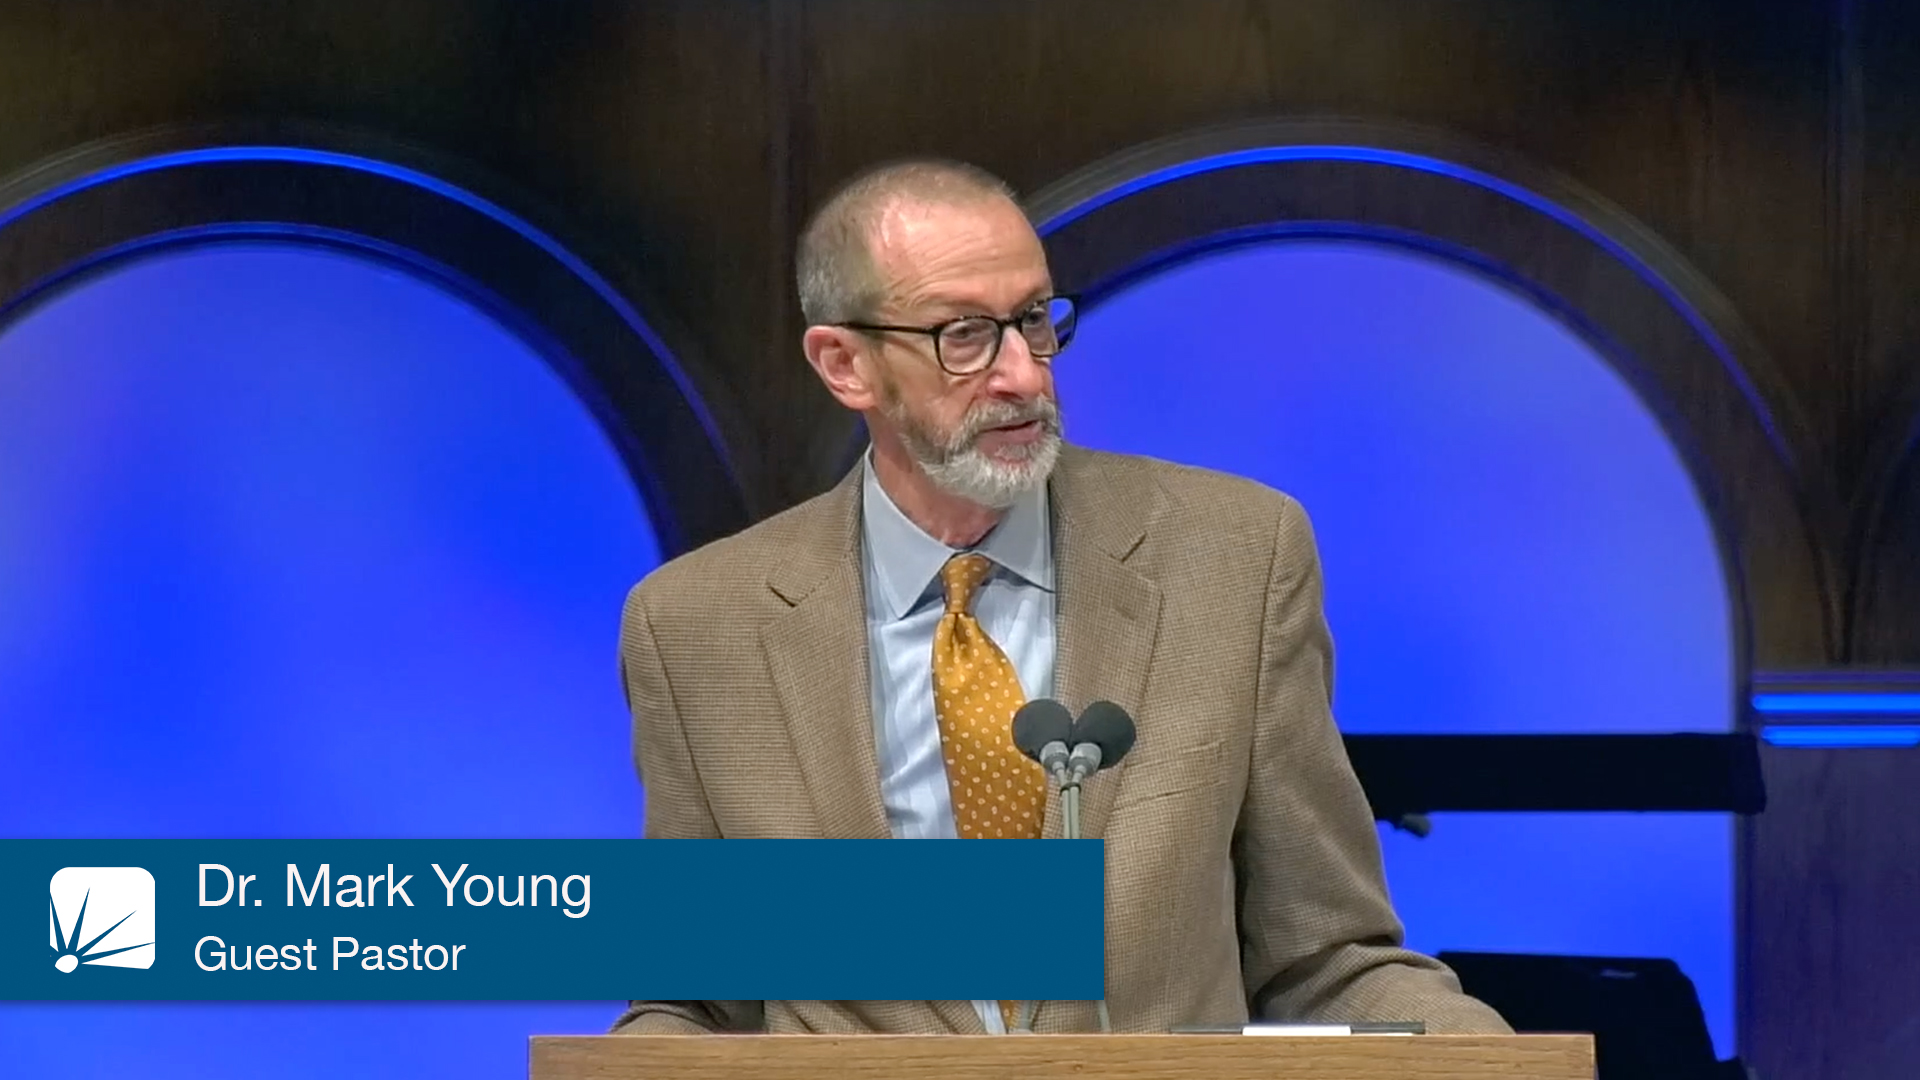 Dr. Mark Young, Guest Pastor